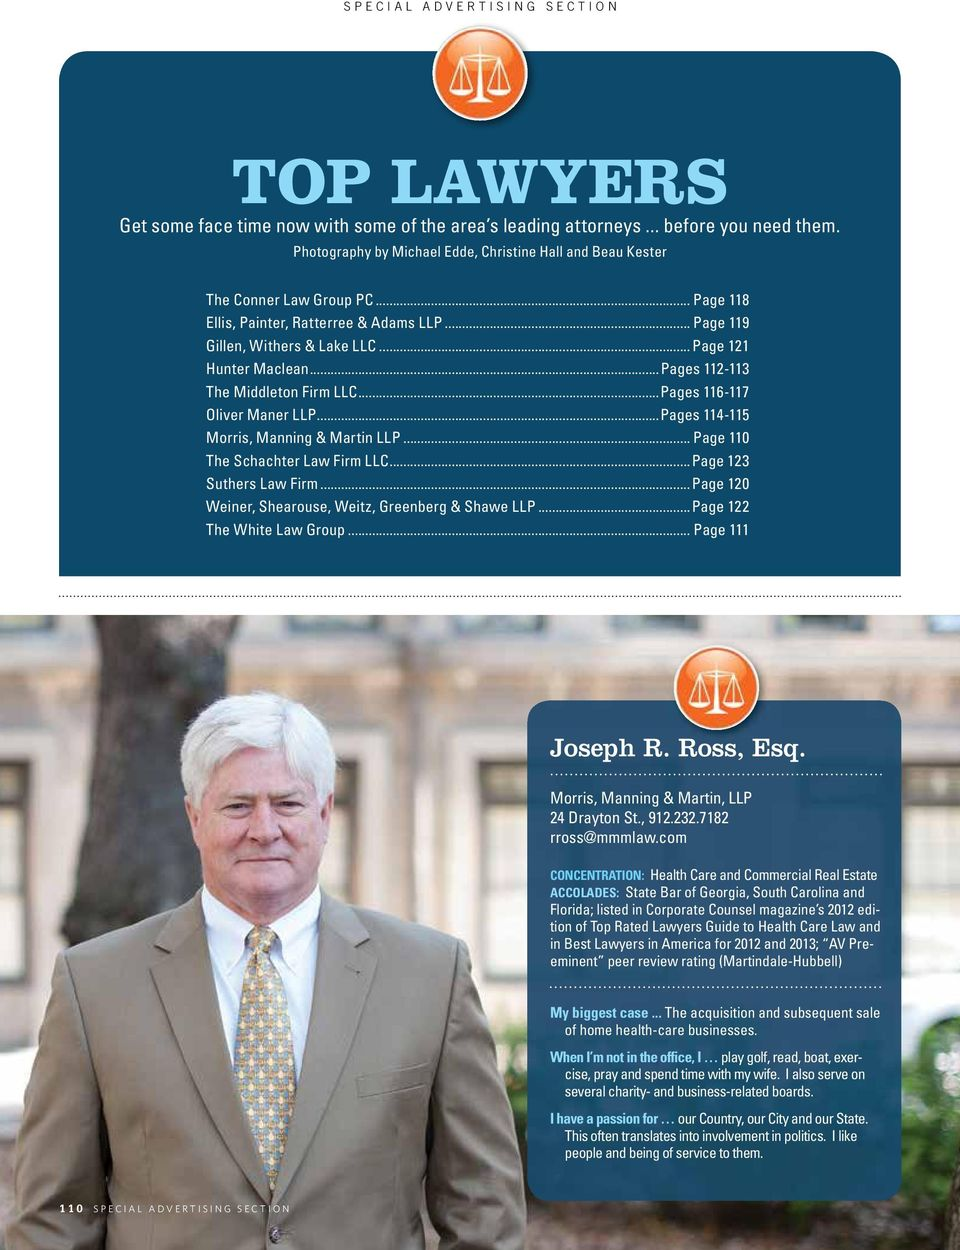 ..Pages 112-113 The Middleton Firm LLC...Pages 116-117 Oliver Maner LLP...Pages 114-115 Morris, Manning & Martin LLP... Page 110 The Schachter Law Firm LLC...Page 123 Suthers Law Firm.